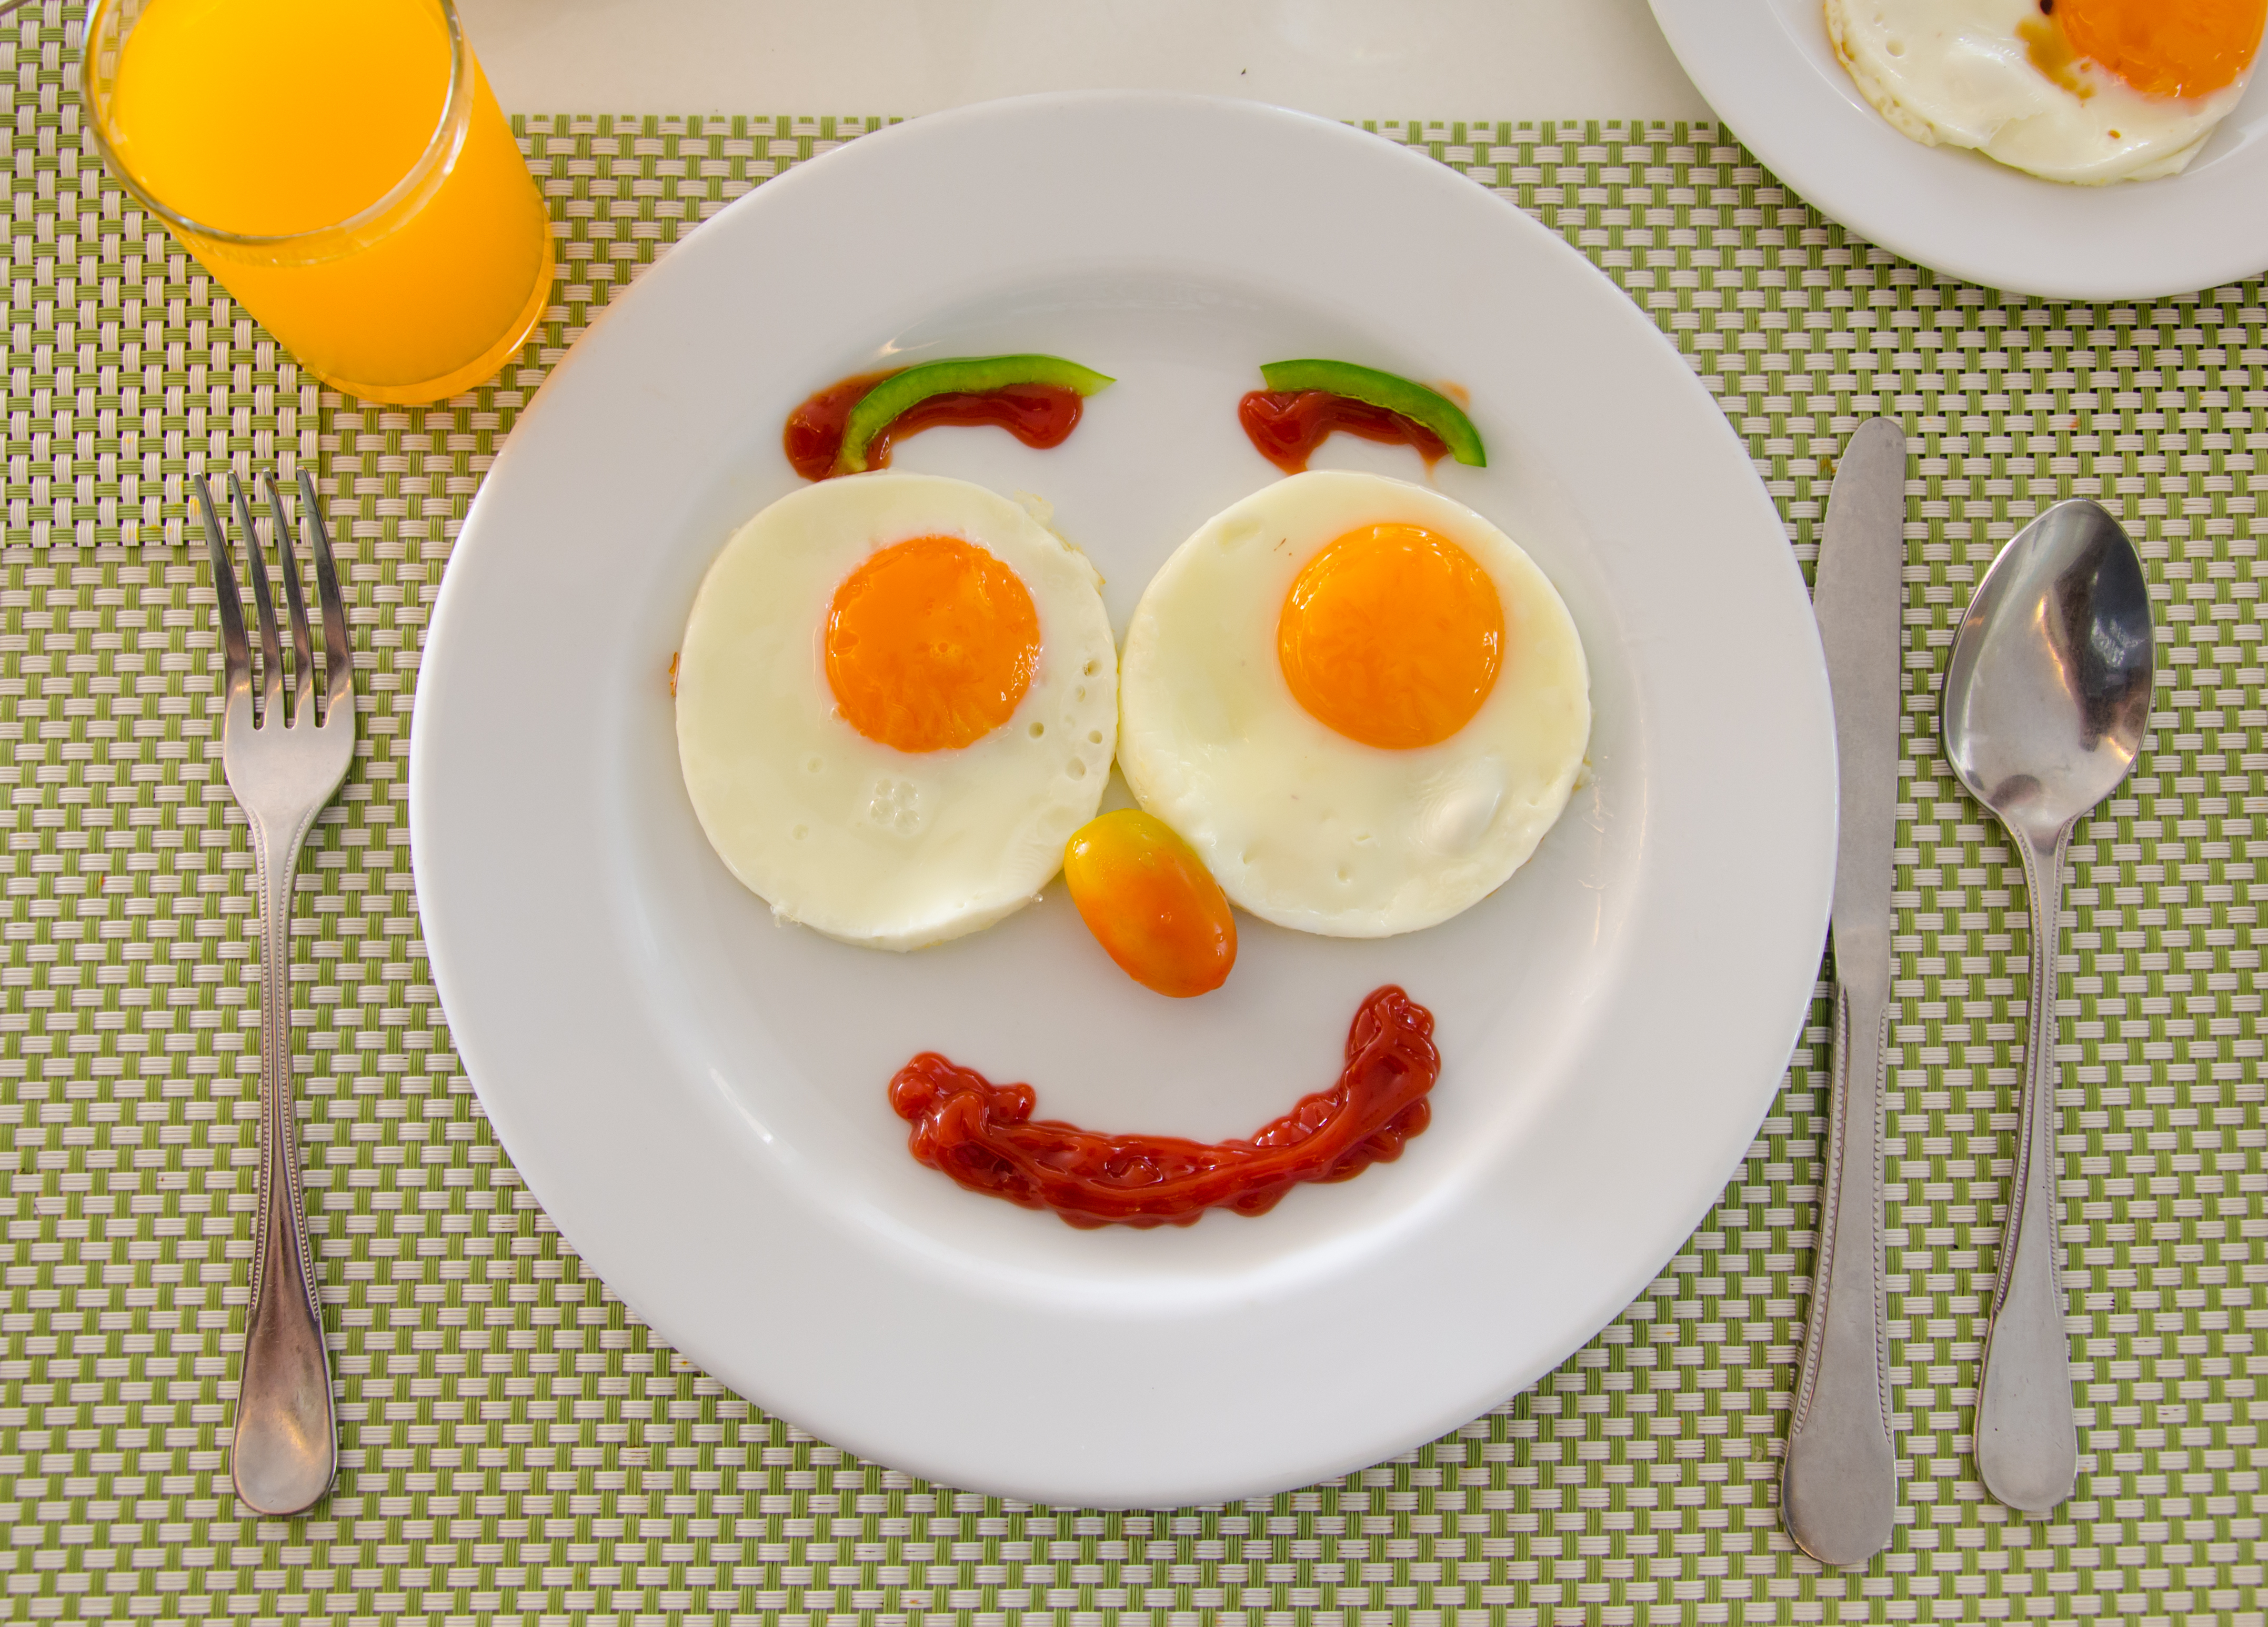 Smiley face made out of breakfast foods.